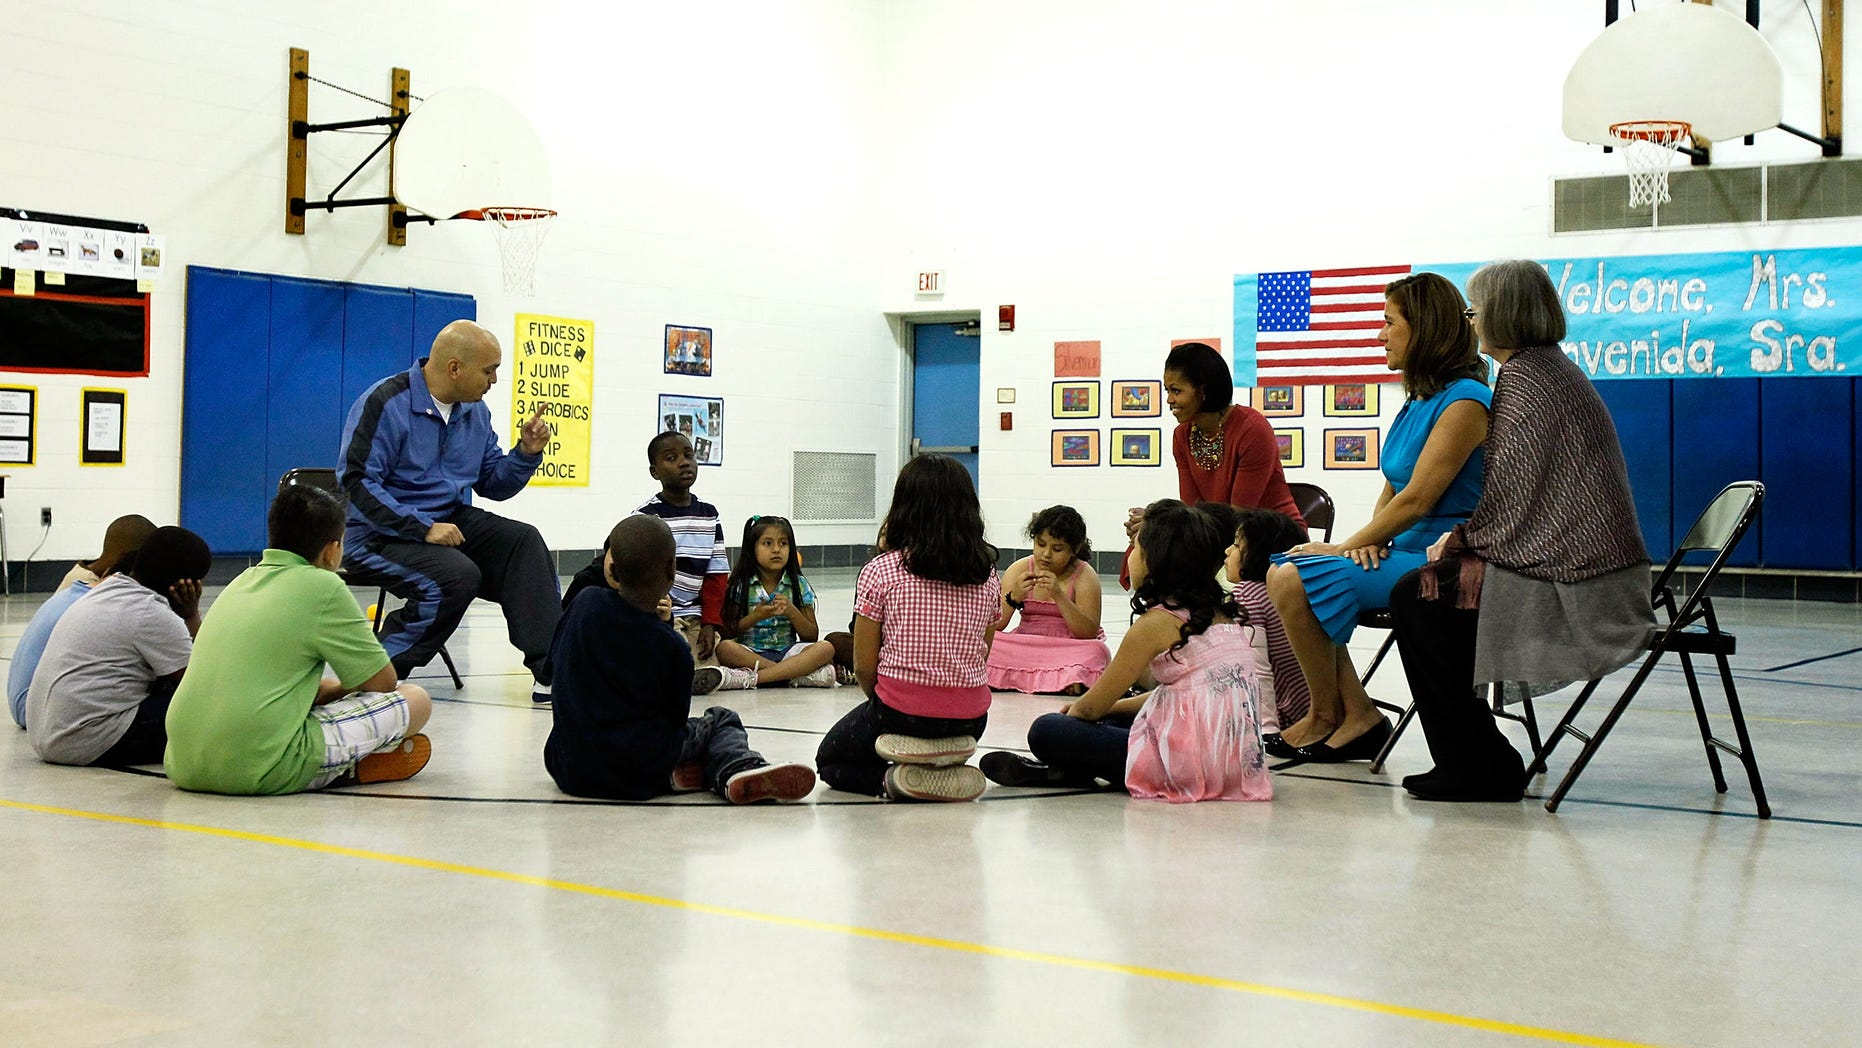 SILVER SPRING, MD - MAY 19:  U.S. first lady Michelle Obama (3rd R) and her Mexican counterpart Margarita Zavala (2nd R) listen to PE teacher Thomas Ryan (L) during a physical education class as they visit New Hampshire Estates Elementary School,  which was awarded the USDA?s Healthier US School Challenge Silver Award in 2009 and partnered with a school in Mexico as part of the Monarch Butterfly Sister School Program,  May 19, 2010 in Silver Spring, Maryland. President of Mexico Felipe Calderon is on a state visit to Washington with the first lady of Mexico.  (Photo by Alex Wong/Getty Images)